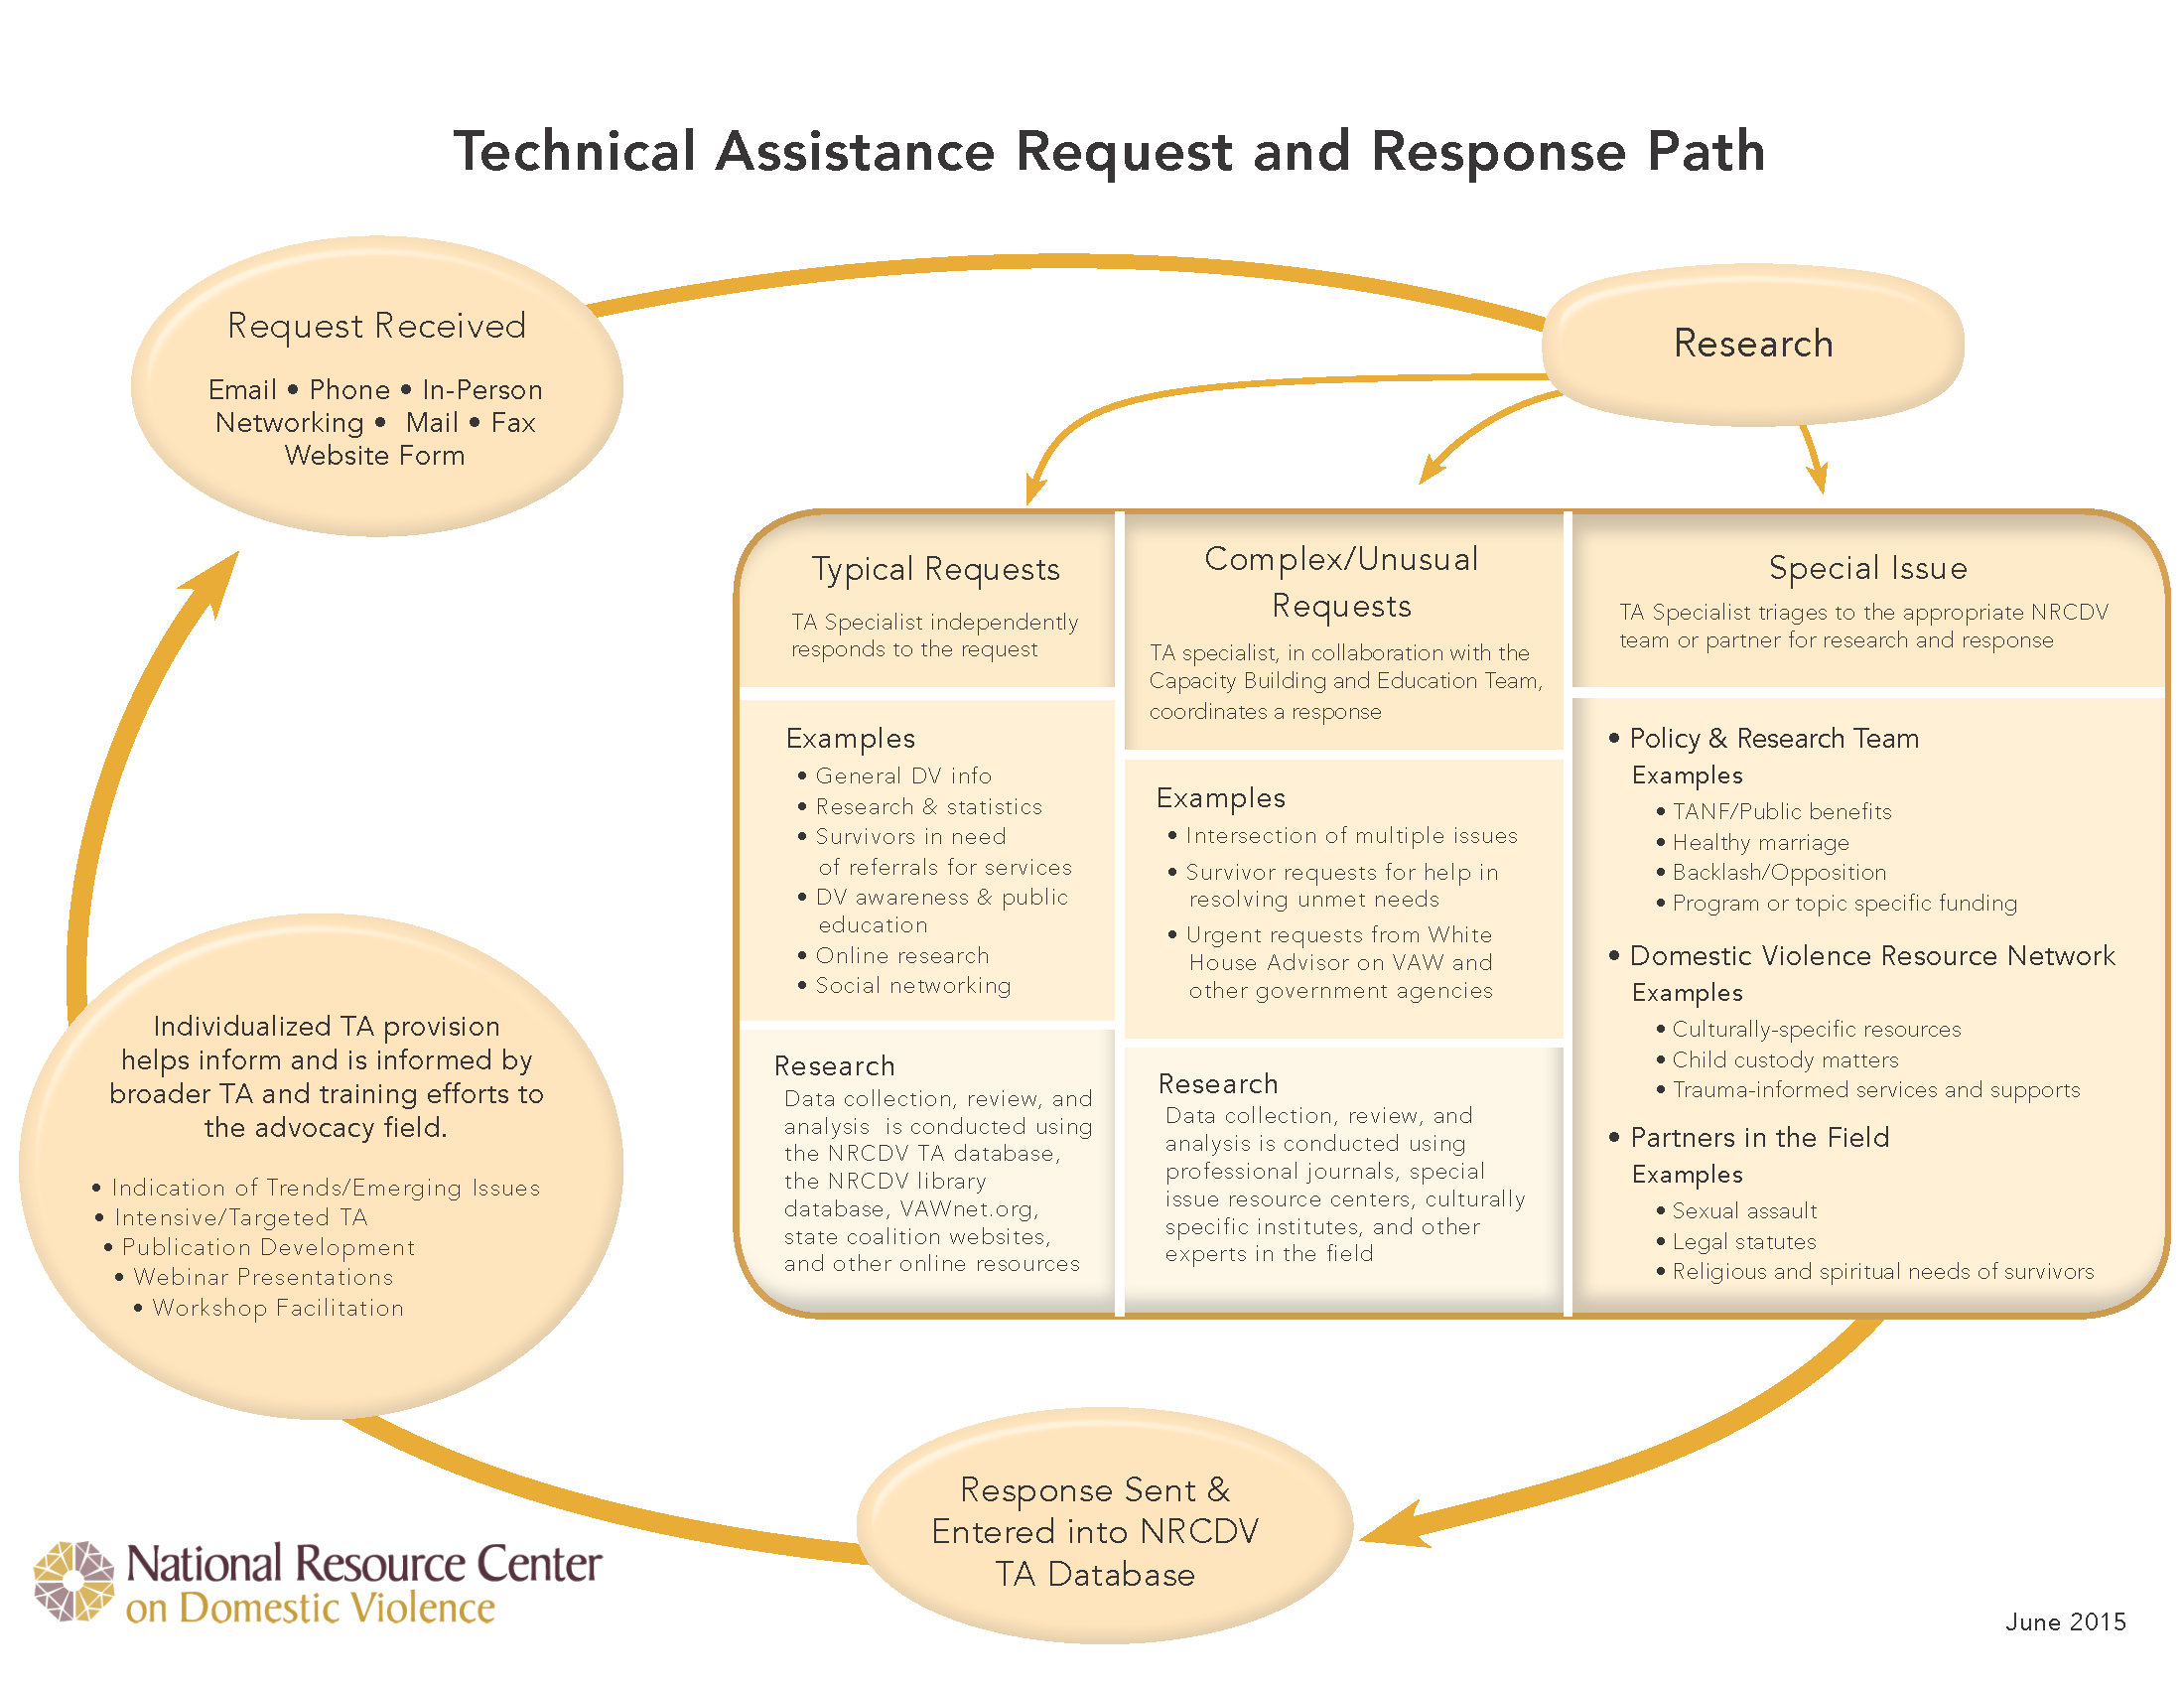 A chart using ovals and arrows to demonstrate the flow of information and response for technical assistance from NRCDV.